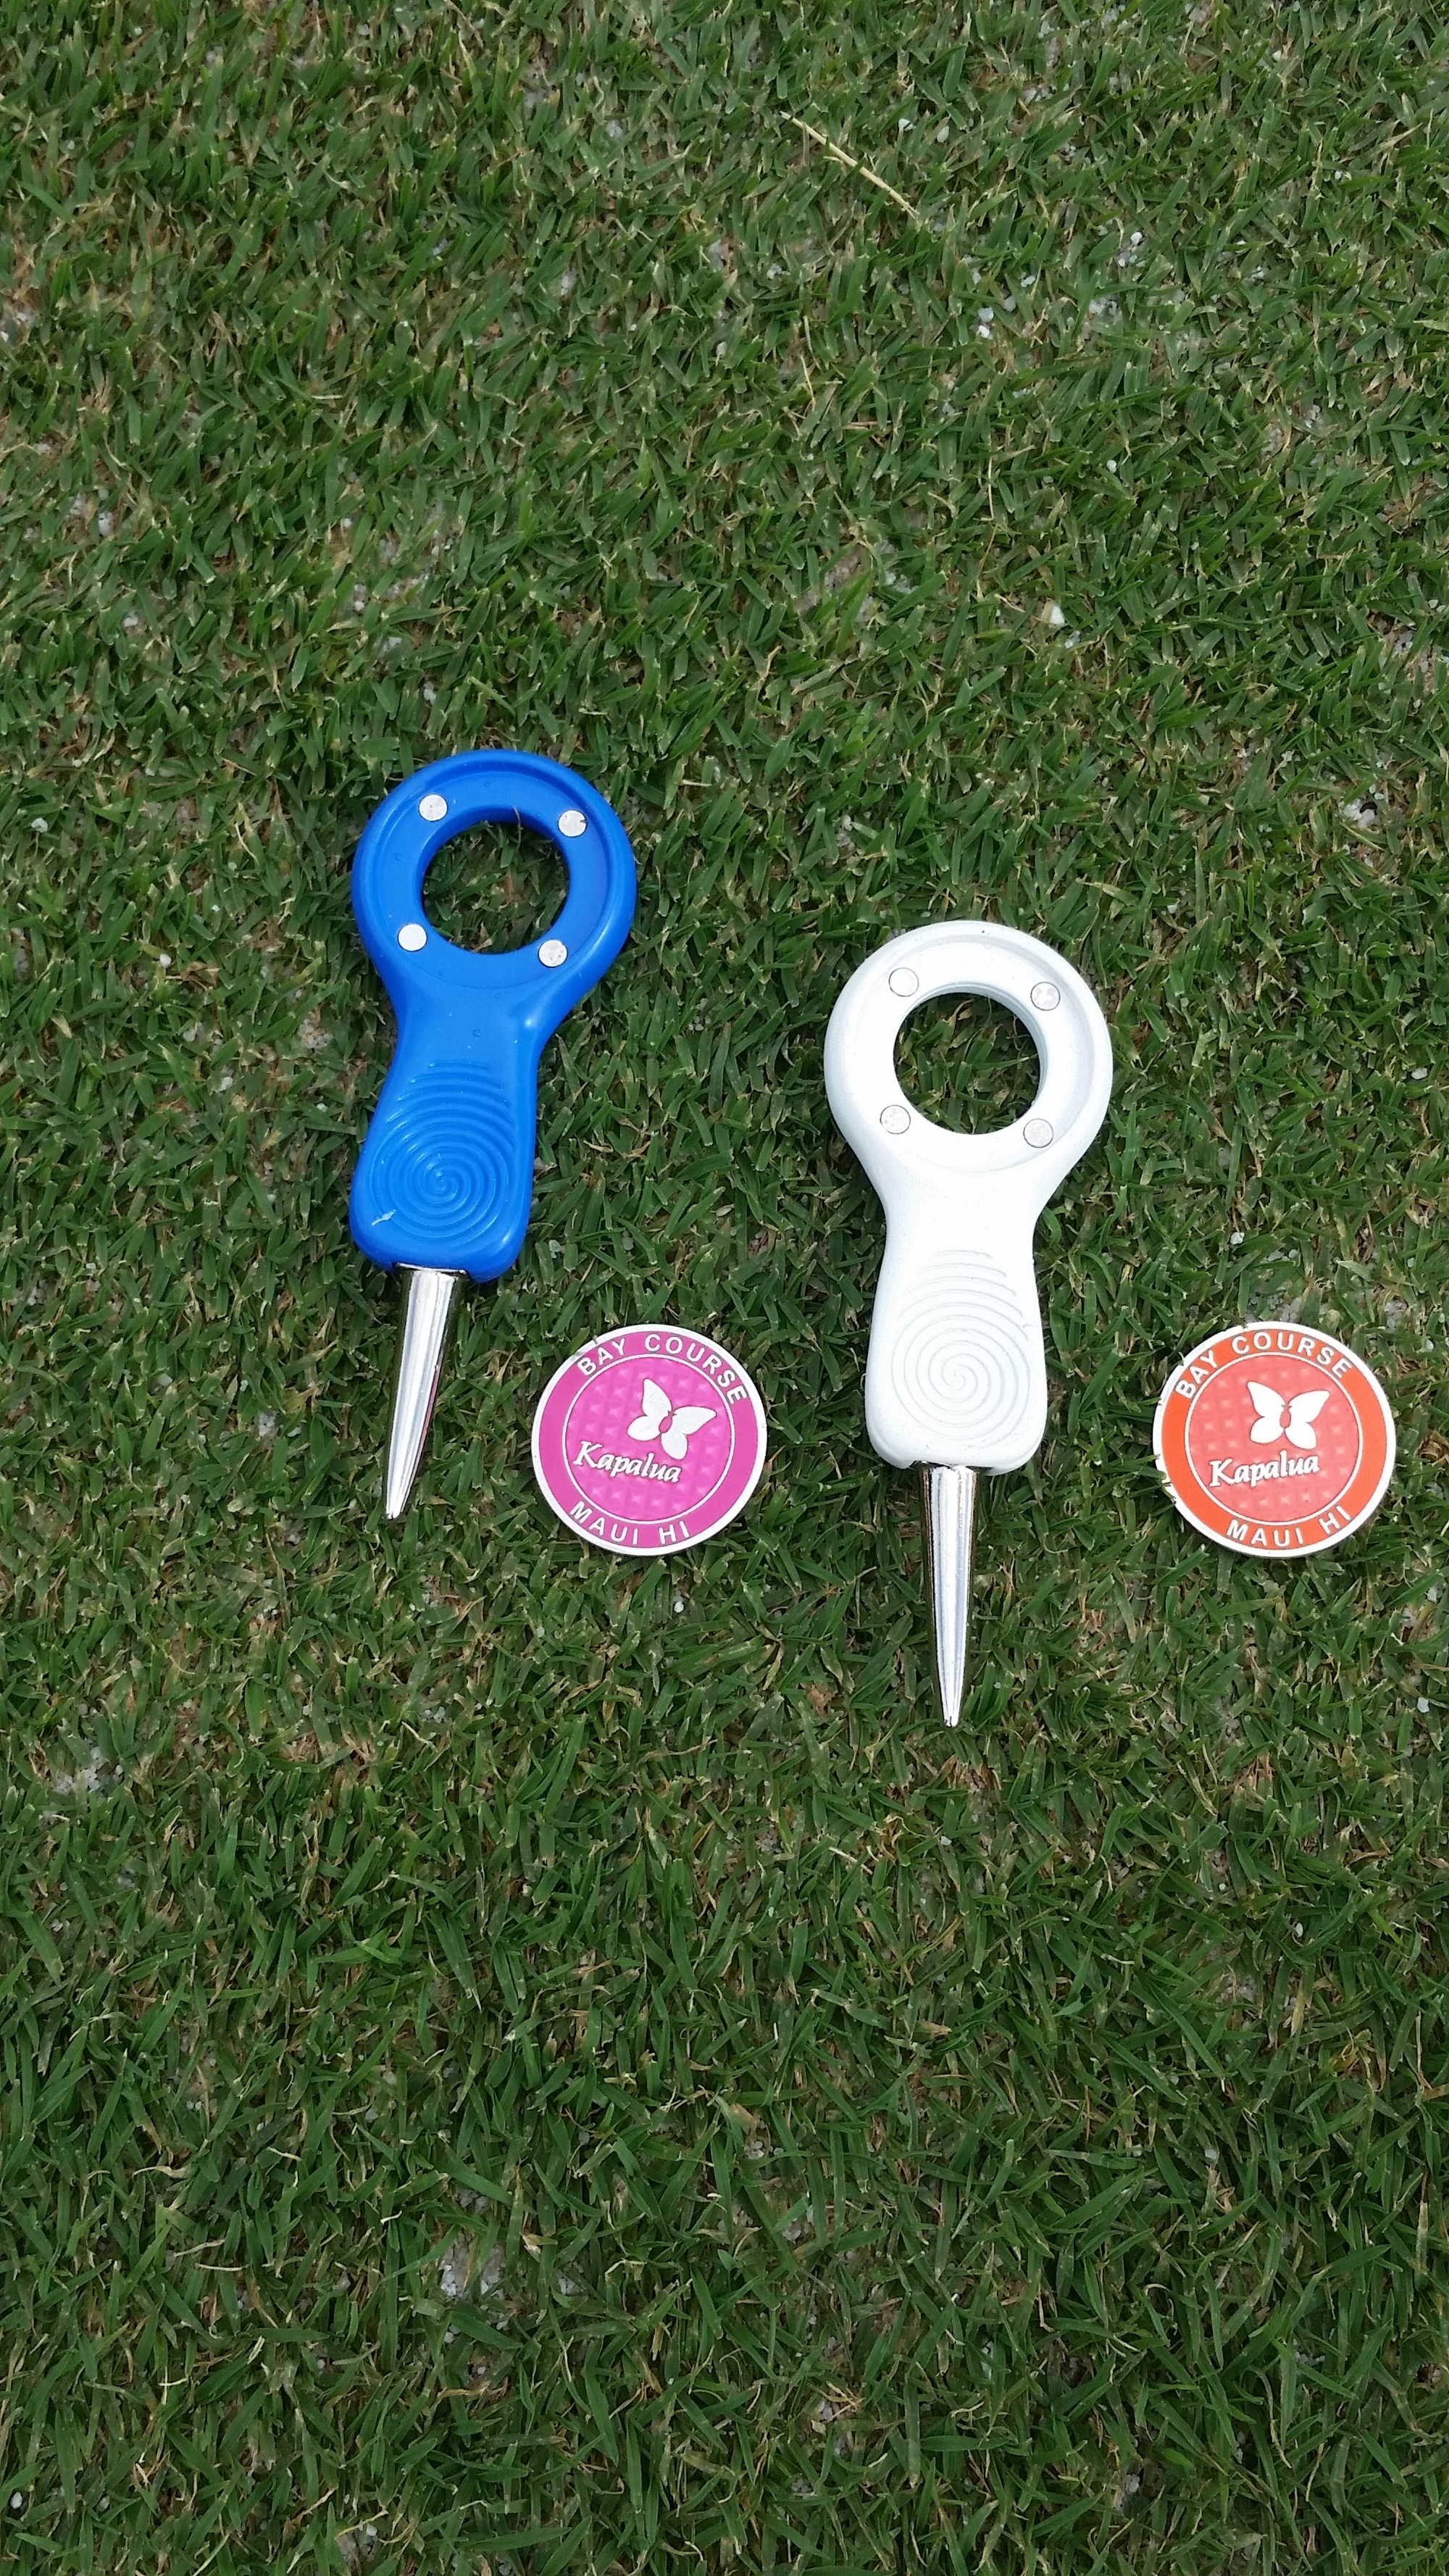 PRG SINGLE PRONG DIVOT TOOL WITH BALLMARKER BLUE OR WHITE